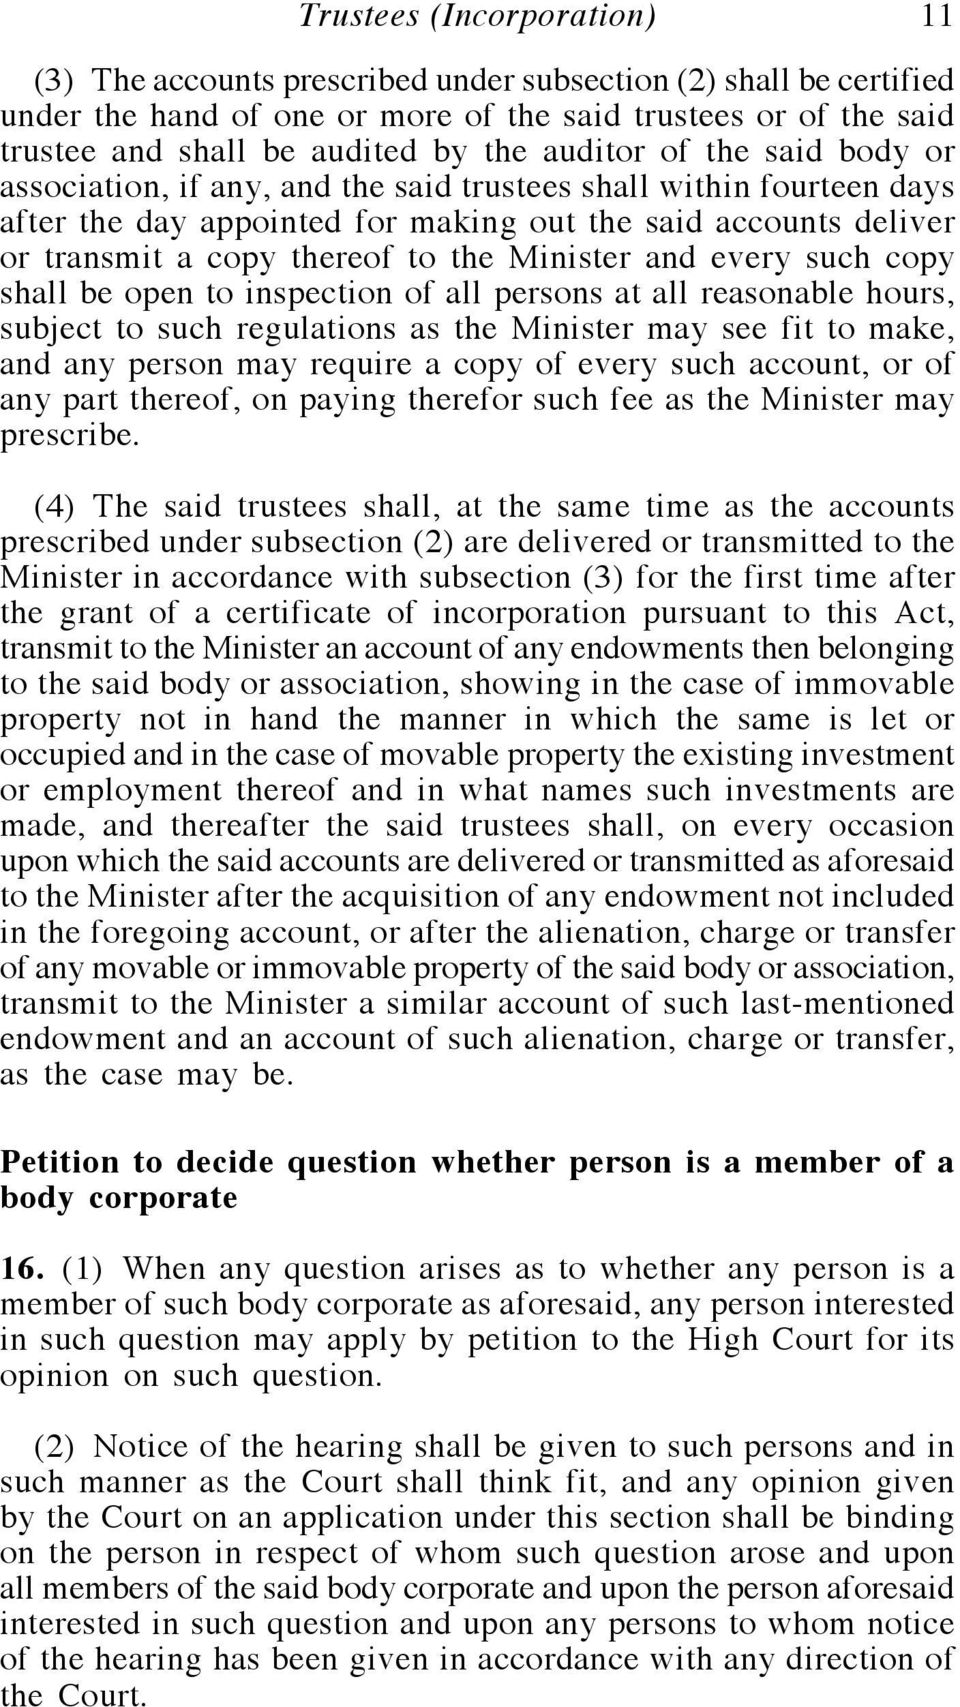 Minister and every such copy shall be open to inspection of all persons at all reasonable hours, subject to such regulations as the Minister may see fit to make, and any person may require a copy of